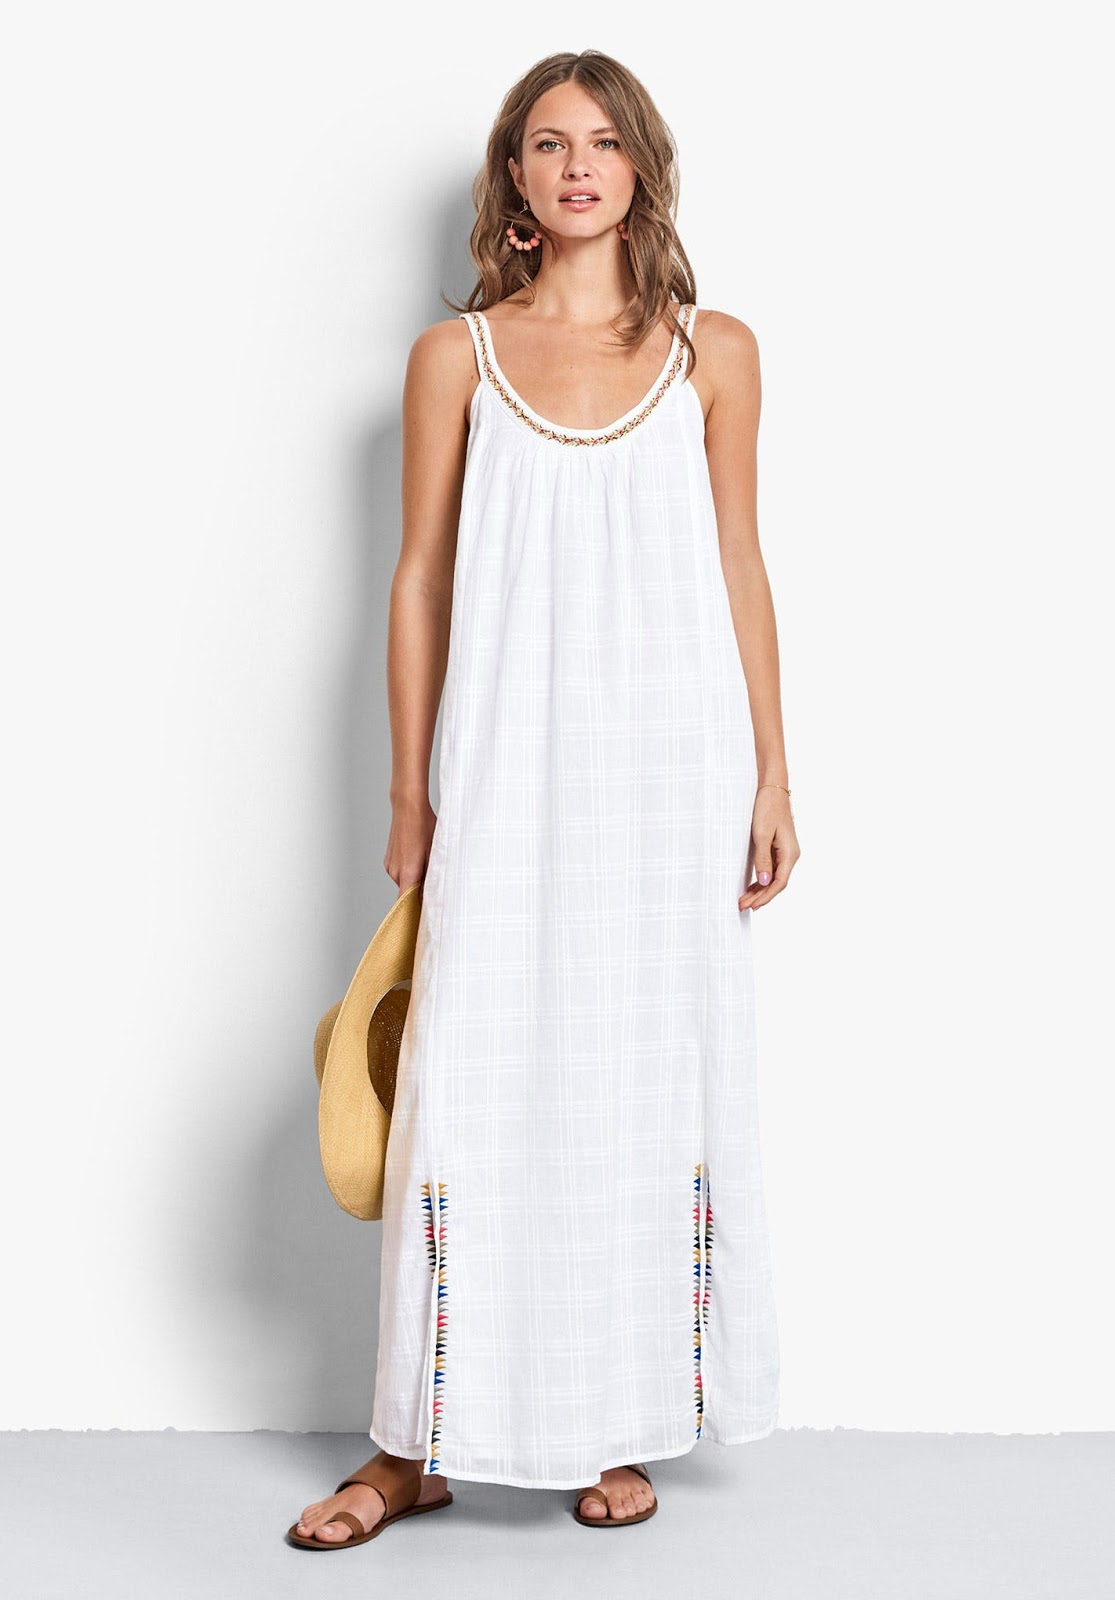 hush Kelsey embroidered dress